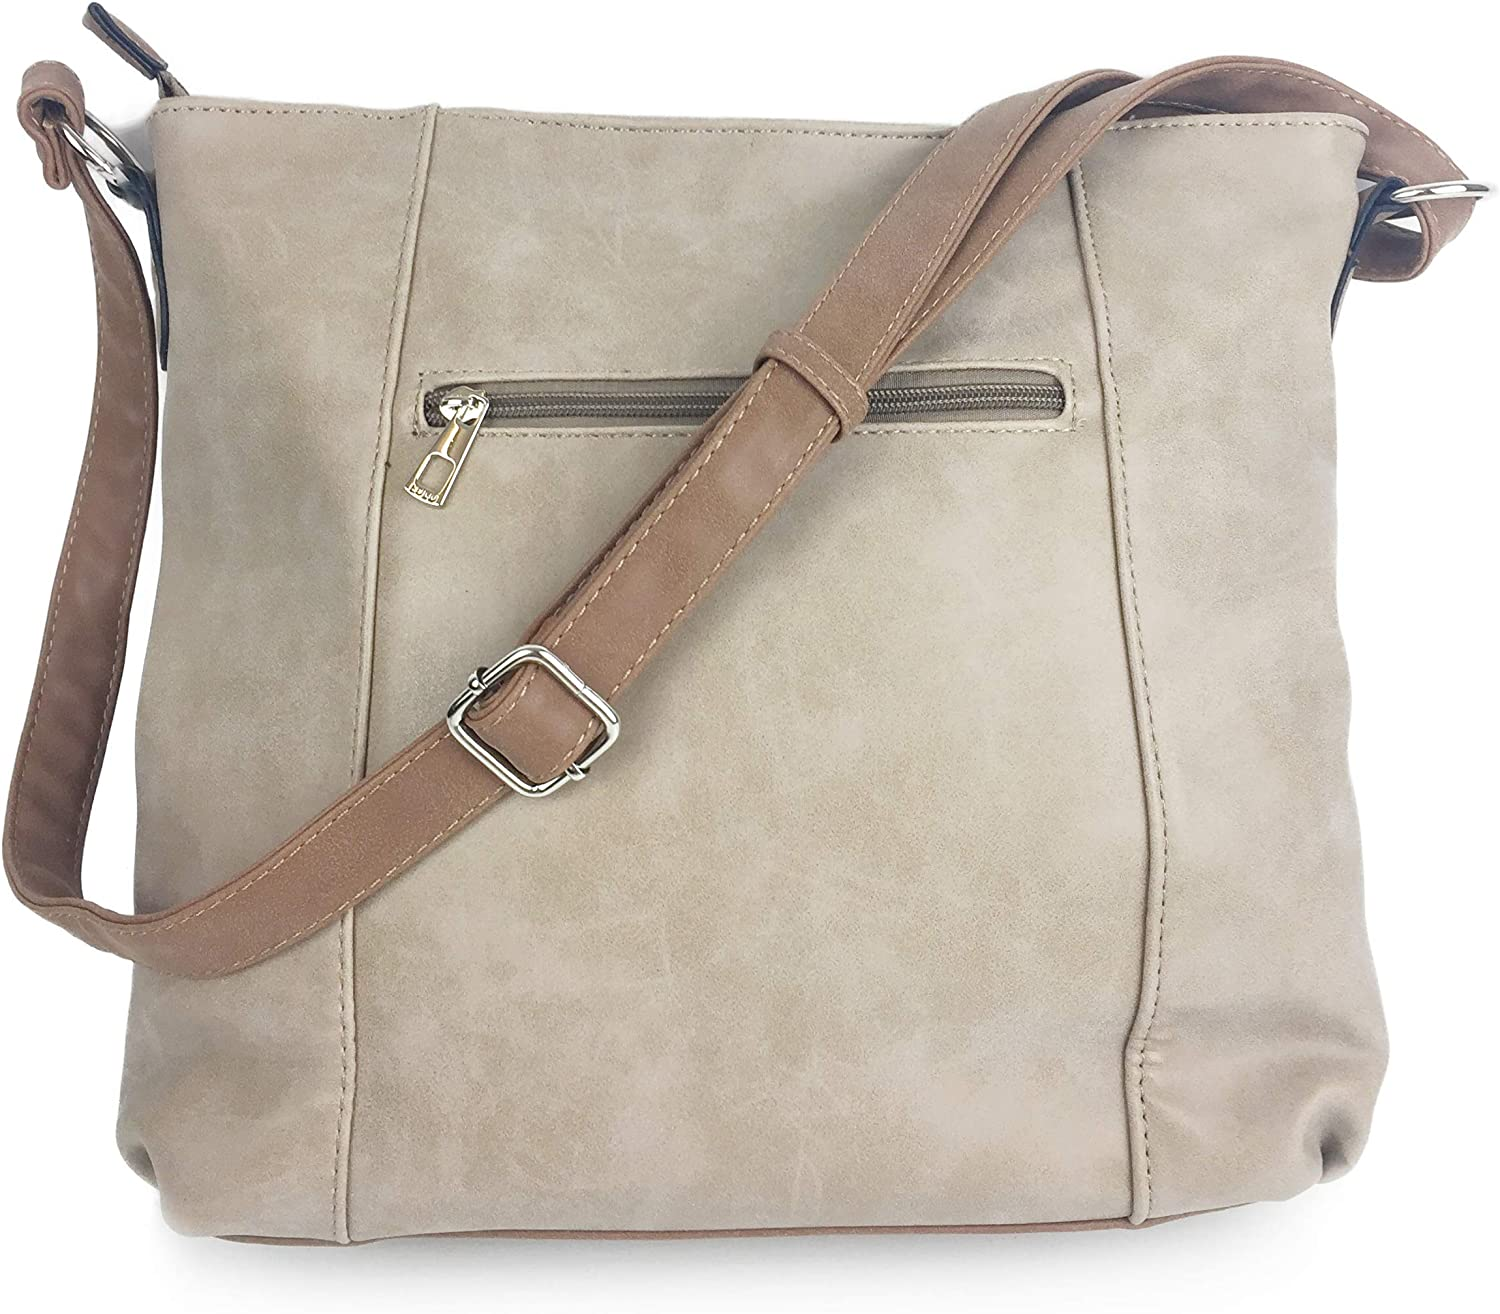 Designer Handbags for Women sale MILANO Classic Italian Styled Fashion Shoulder Bag//Slouch in Beautiful Matt Finish Vintage Faux Nu Buck Leather with Adjustable Shoulder Strap.